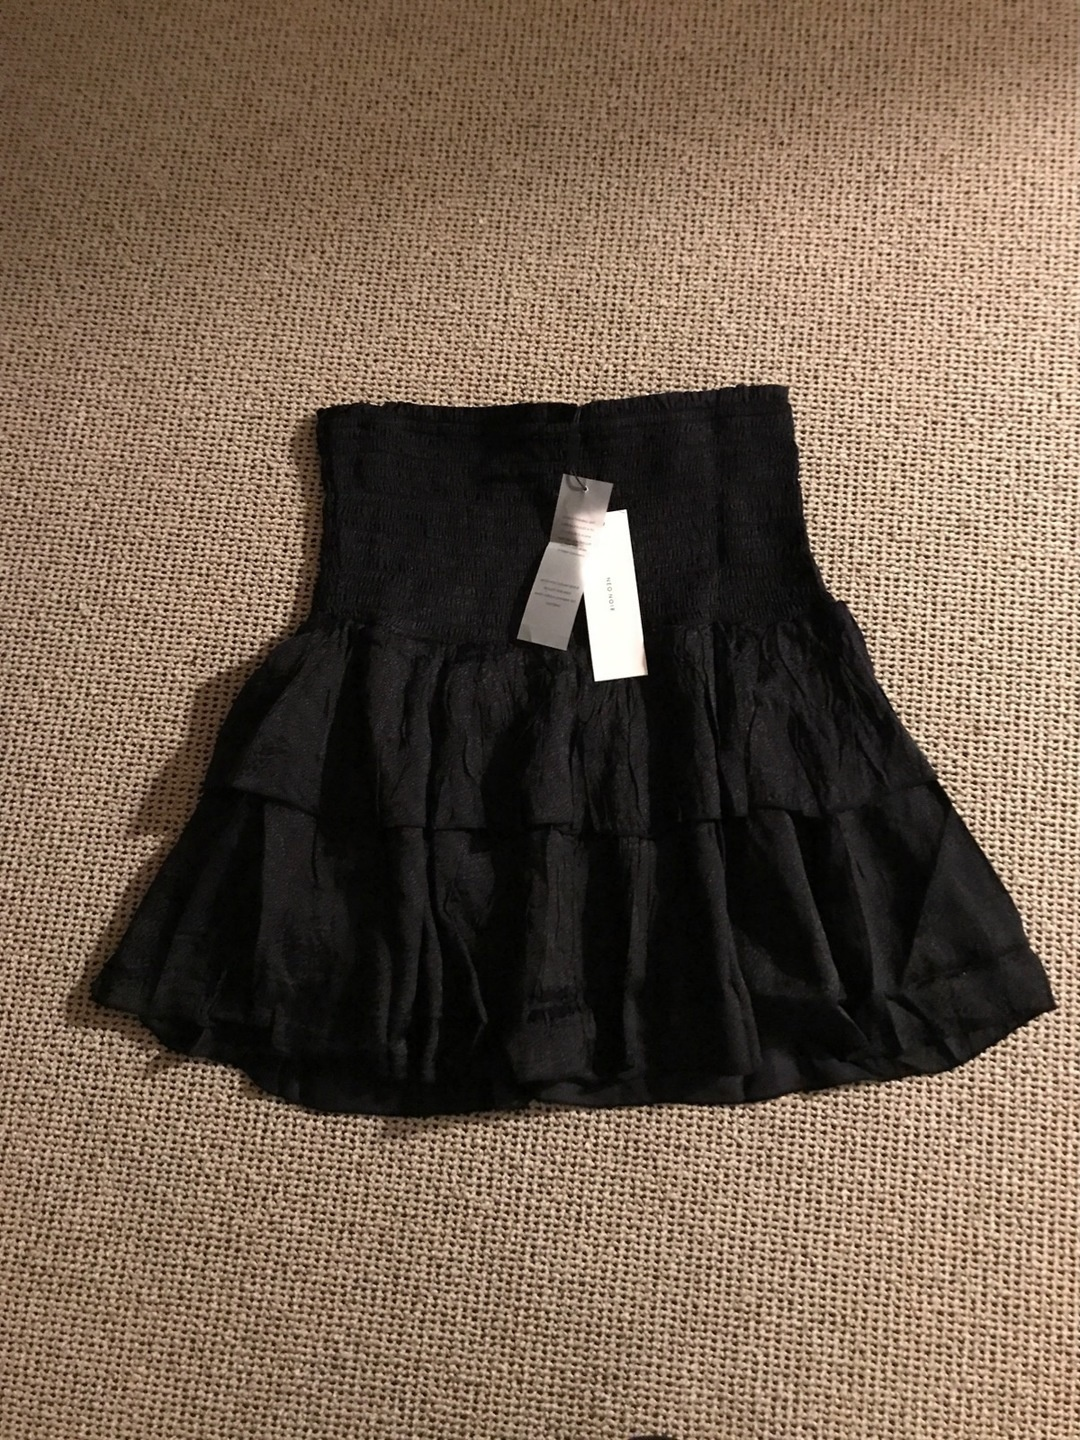 Women's skirts - NEO NOIR photo 1